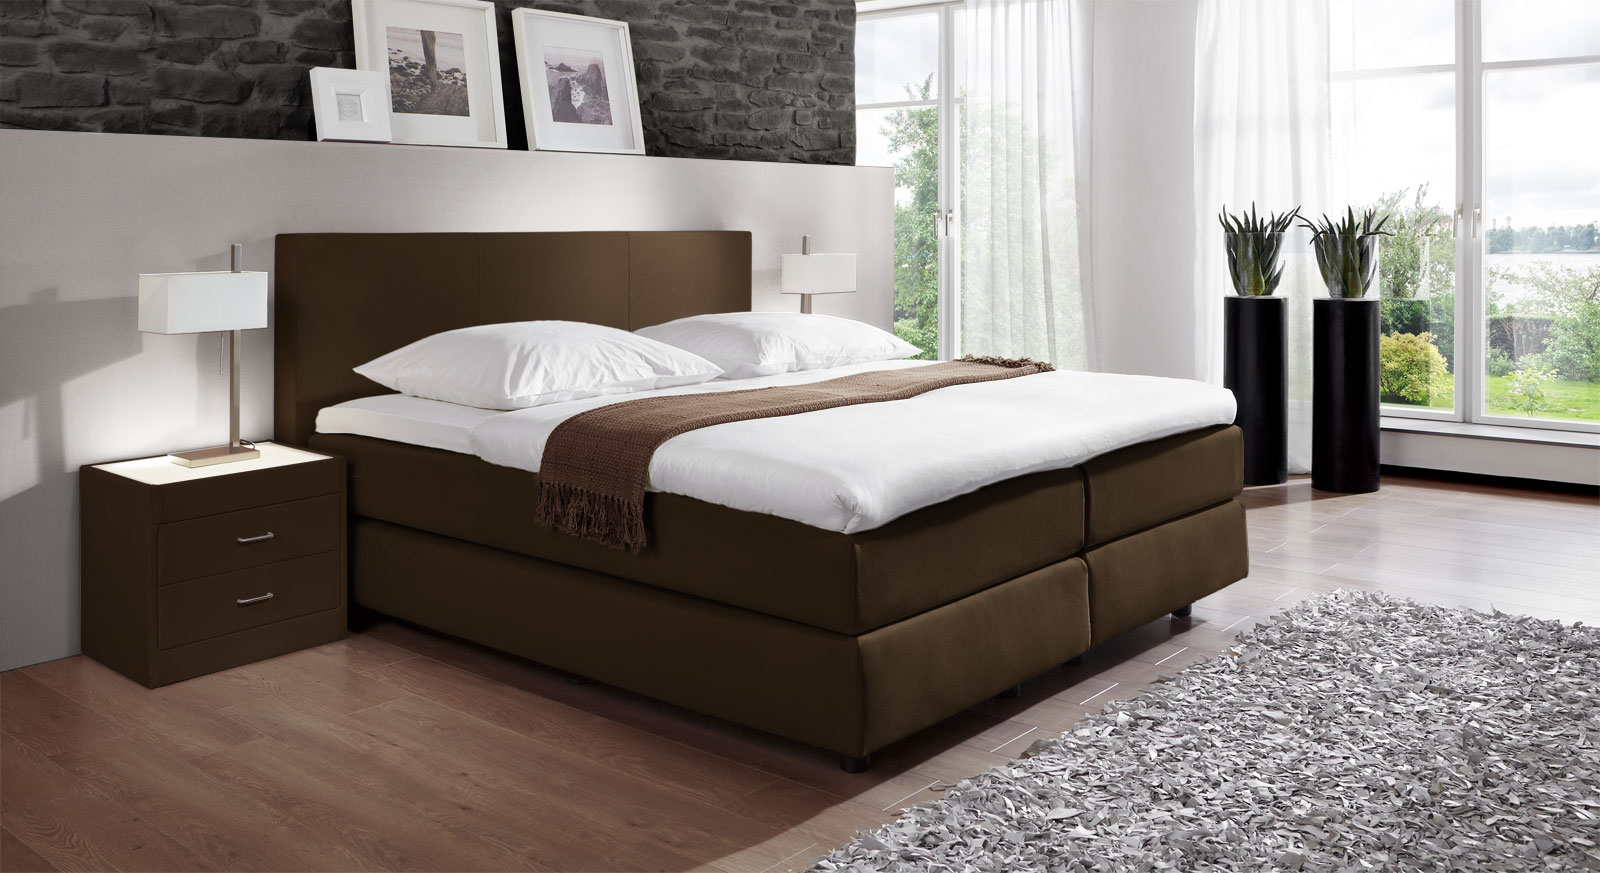 unser luxus boxspringbett cannes online kaufen. Black Bedroom Furniture Sets. Home Design Ideas